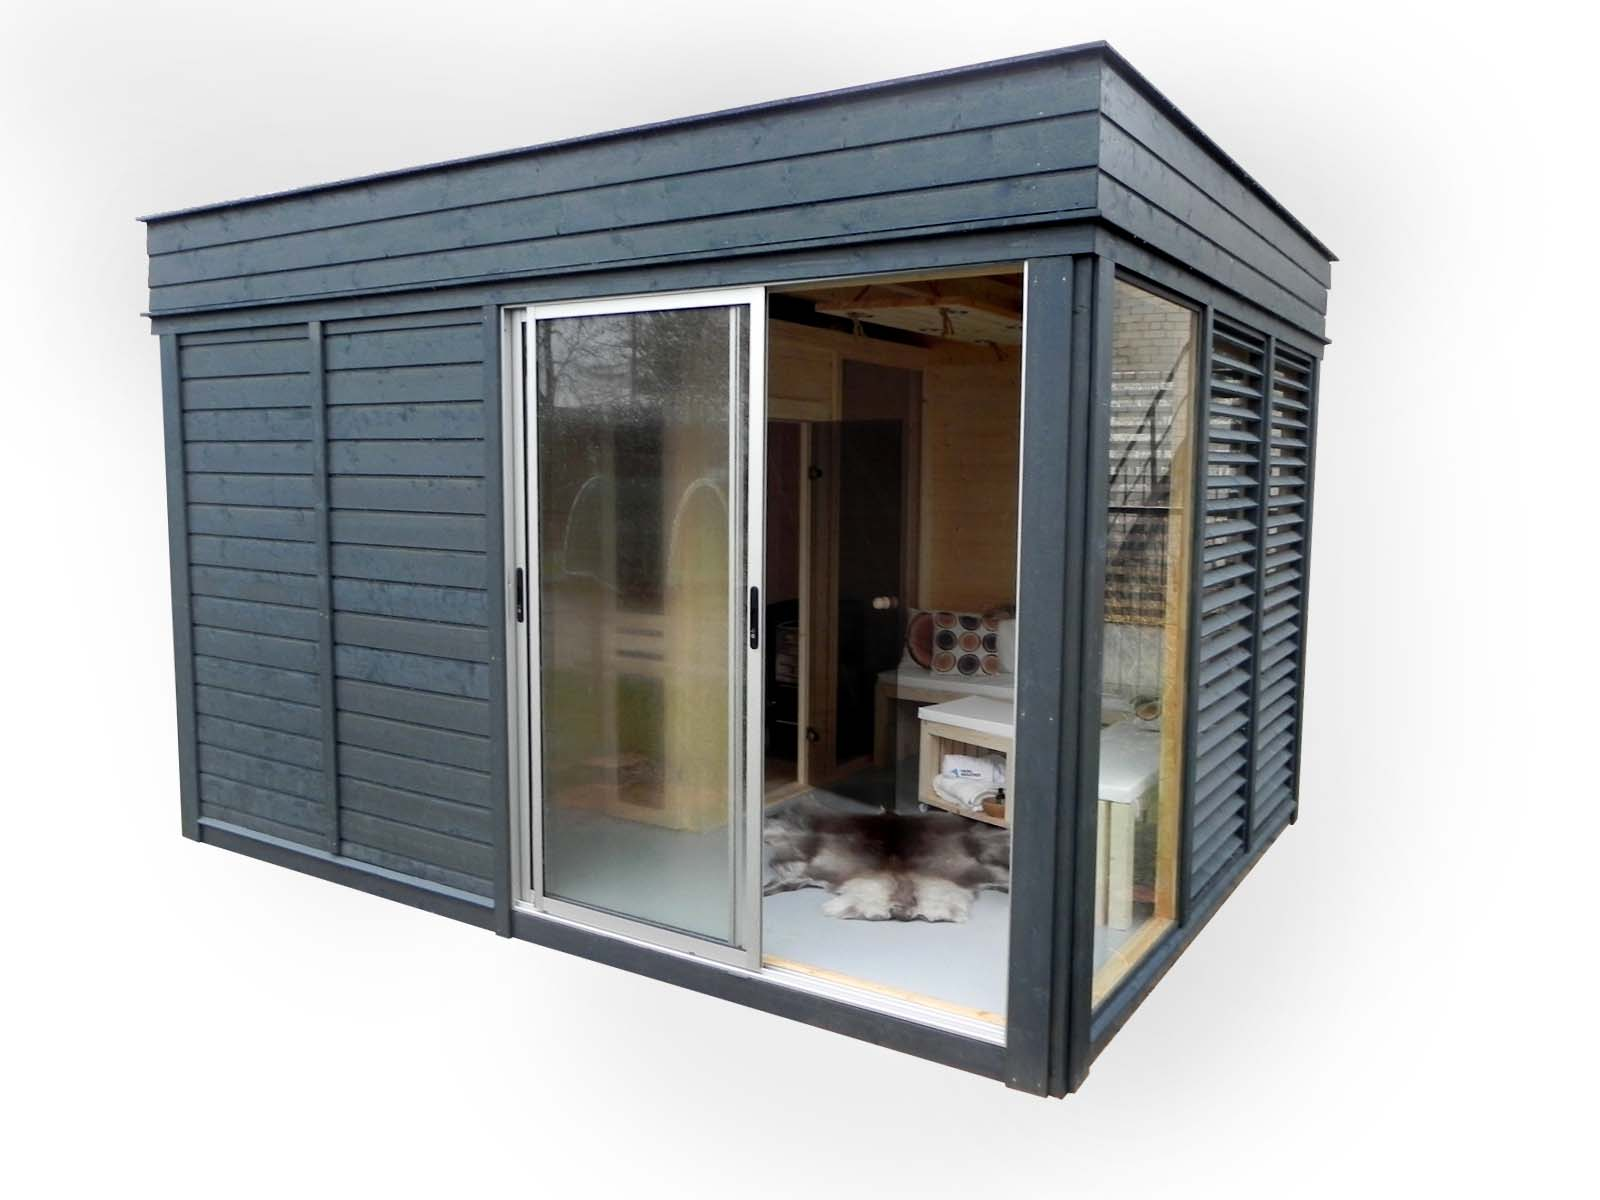 gartensauna sauna cube 4 x 3 m breite x tiefe aus fichtenholz garten cube kube gartenhaus. Black Bedroom Furniture Sets. Home Design Ideas